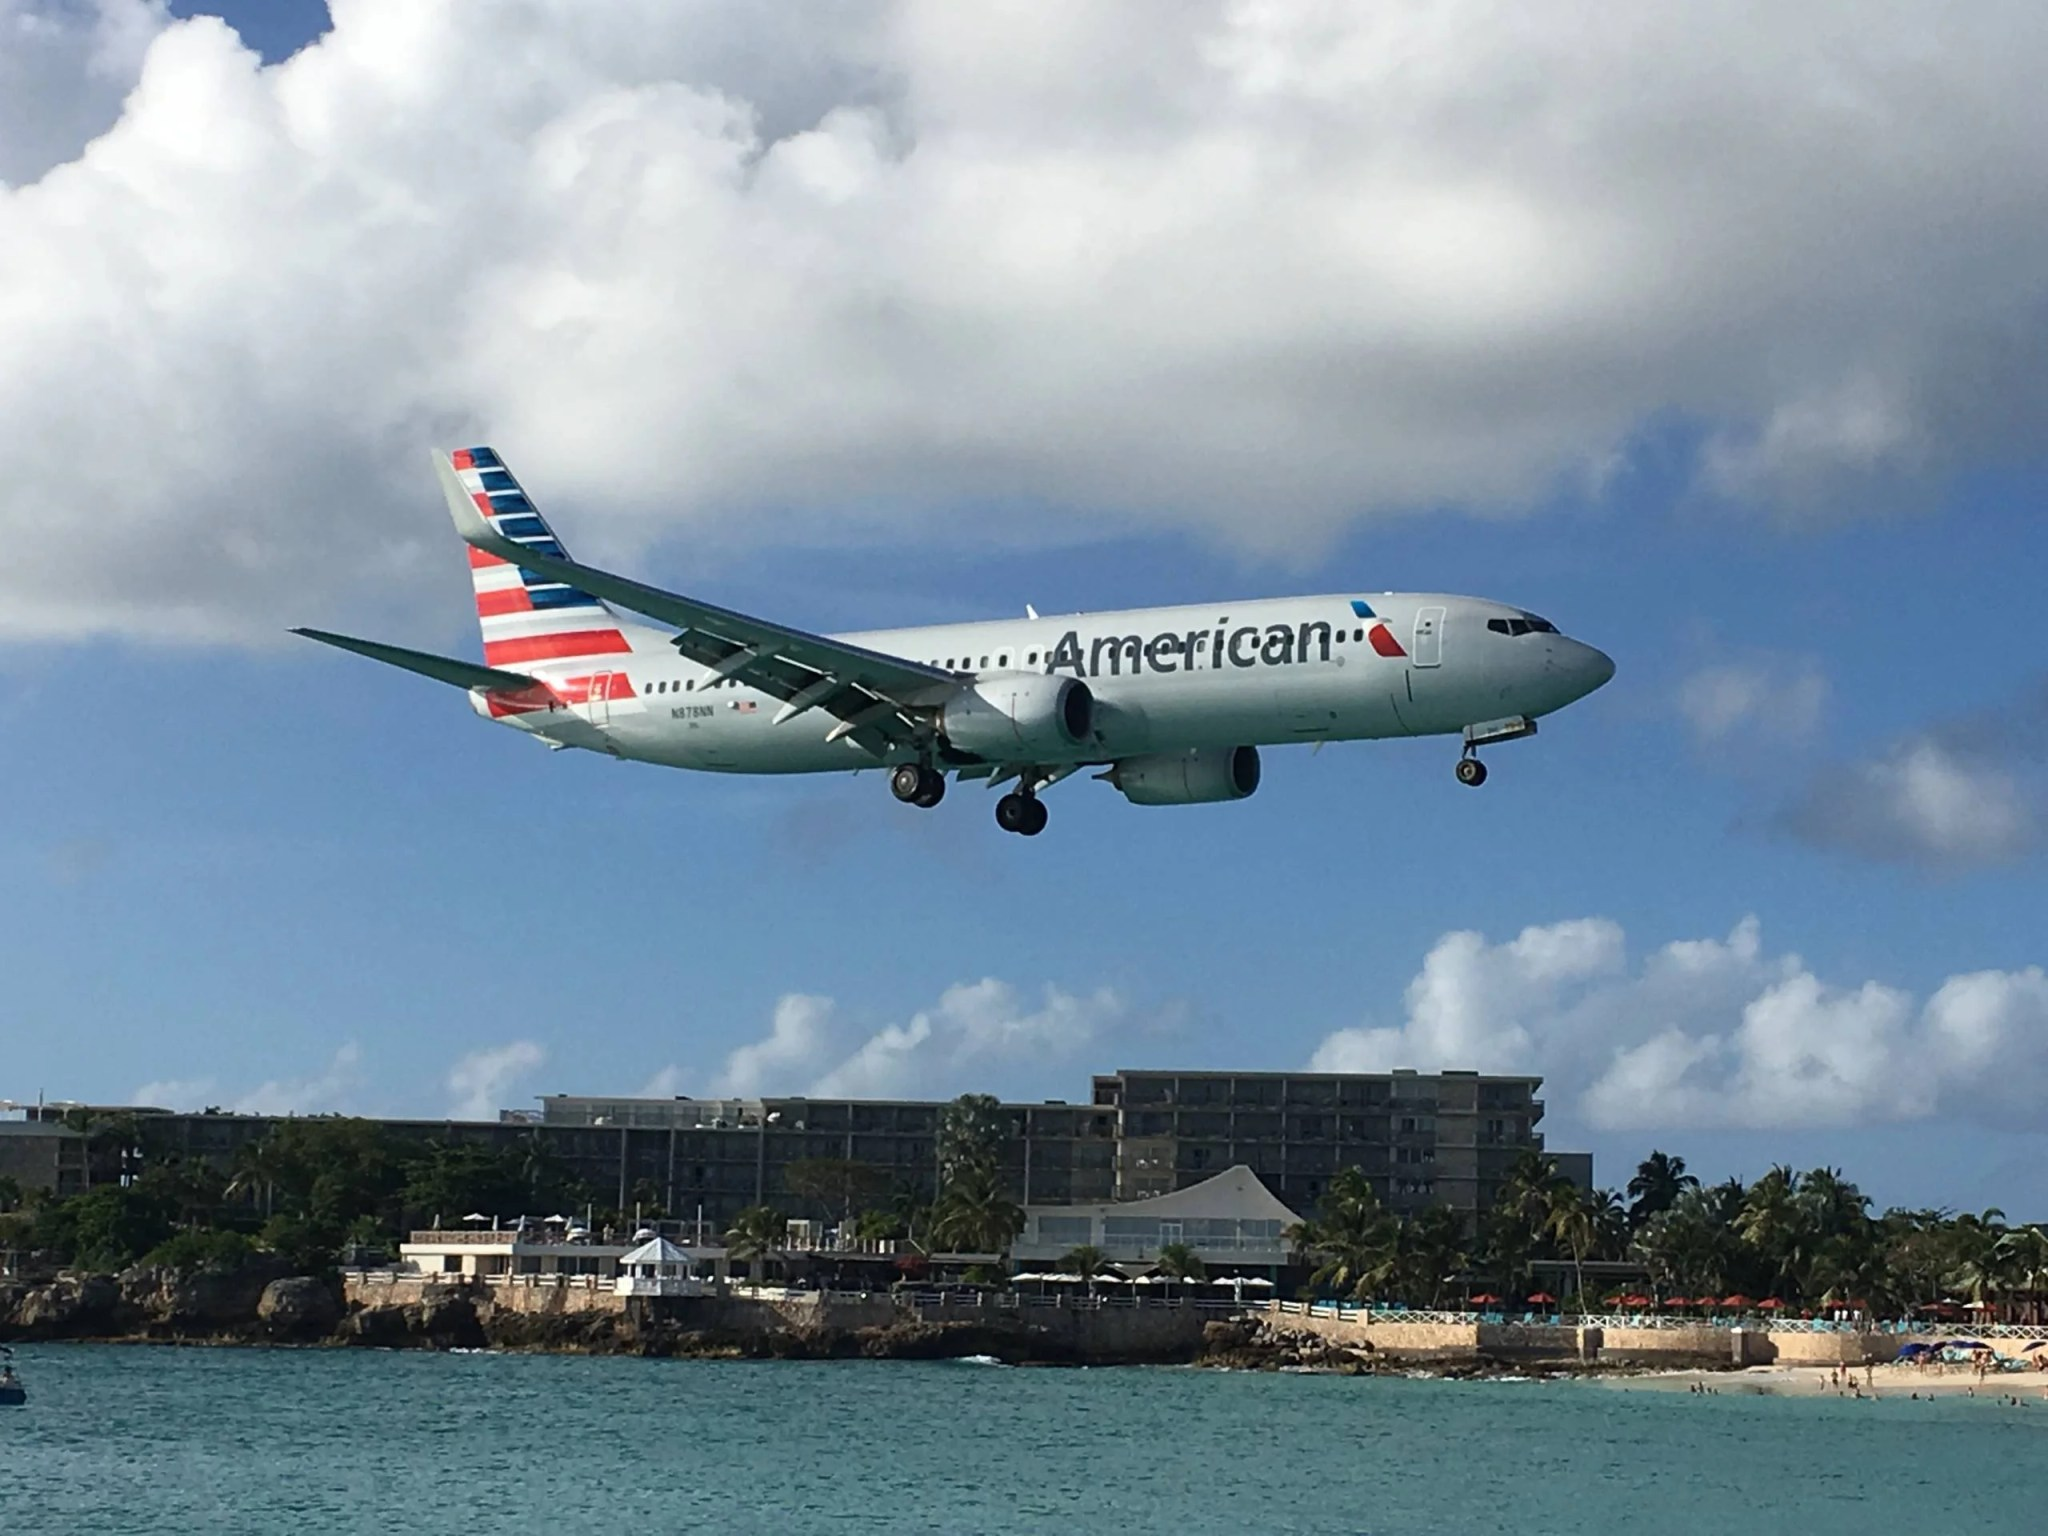 american airlines how many miles for free flight